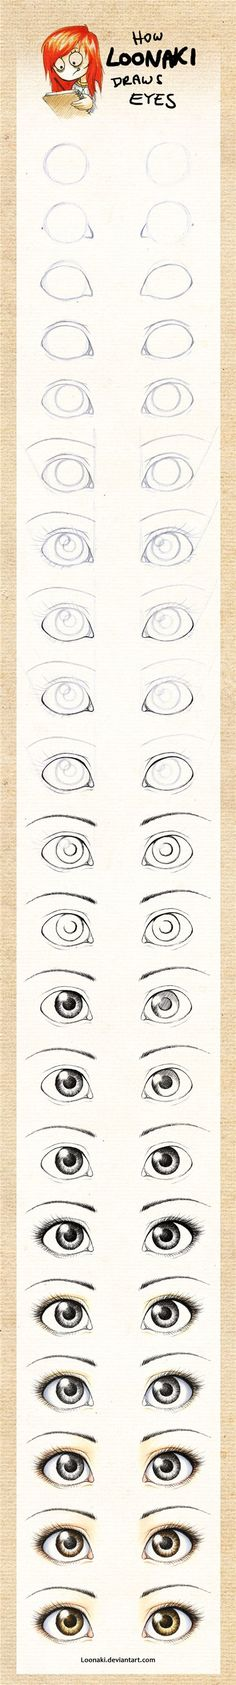 How to draw eyes (the one thing I have NEVER been able to get right! Maybe this will help!)